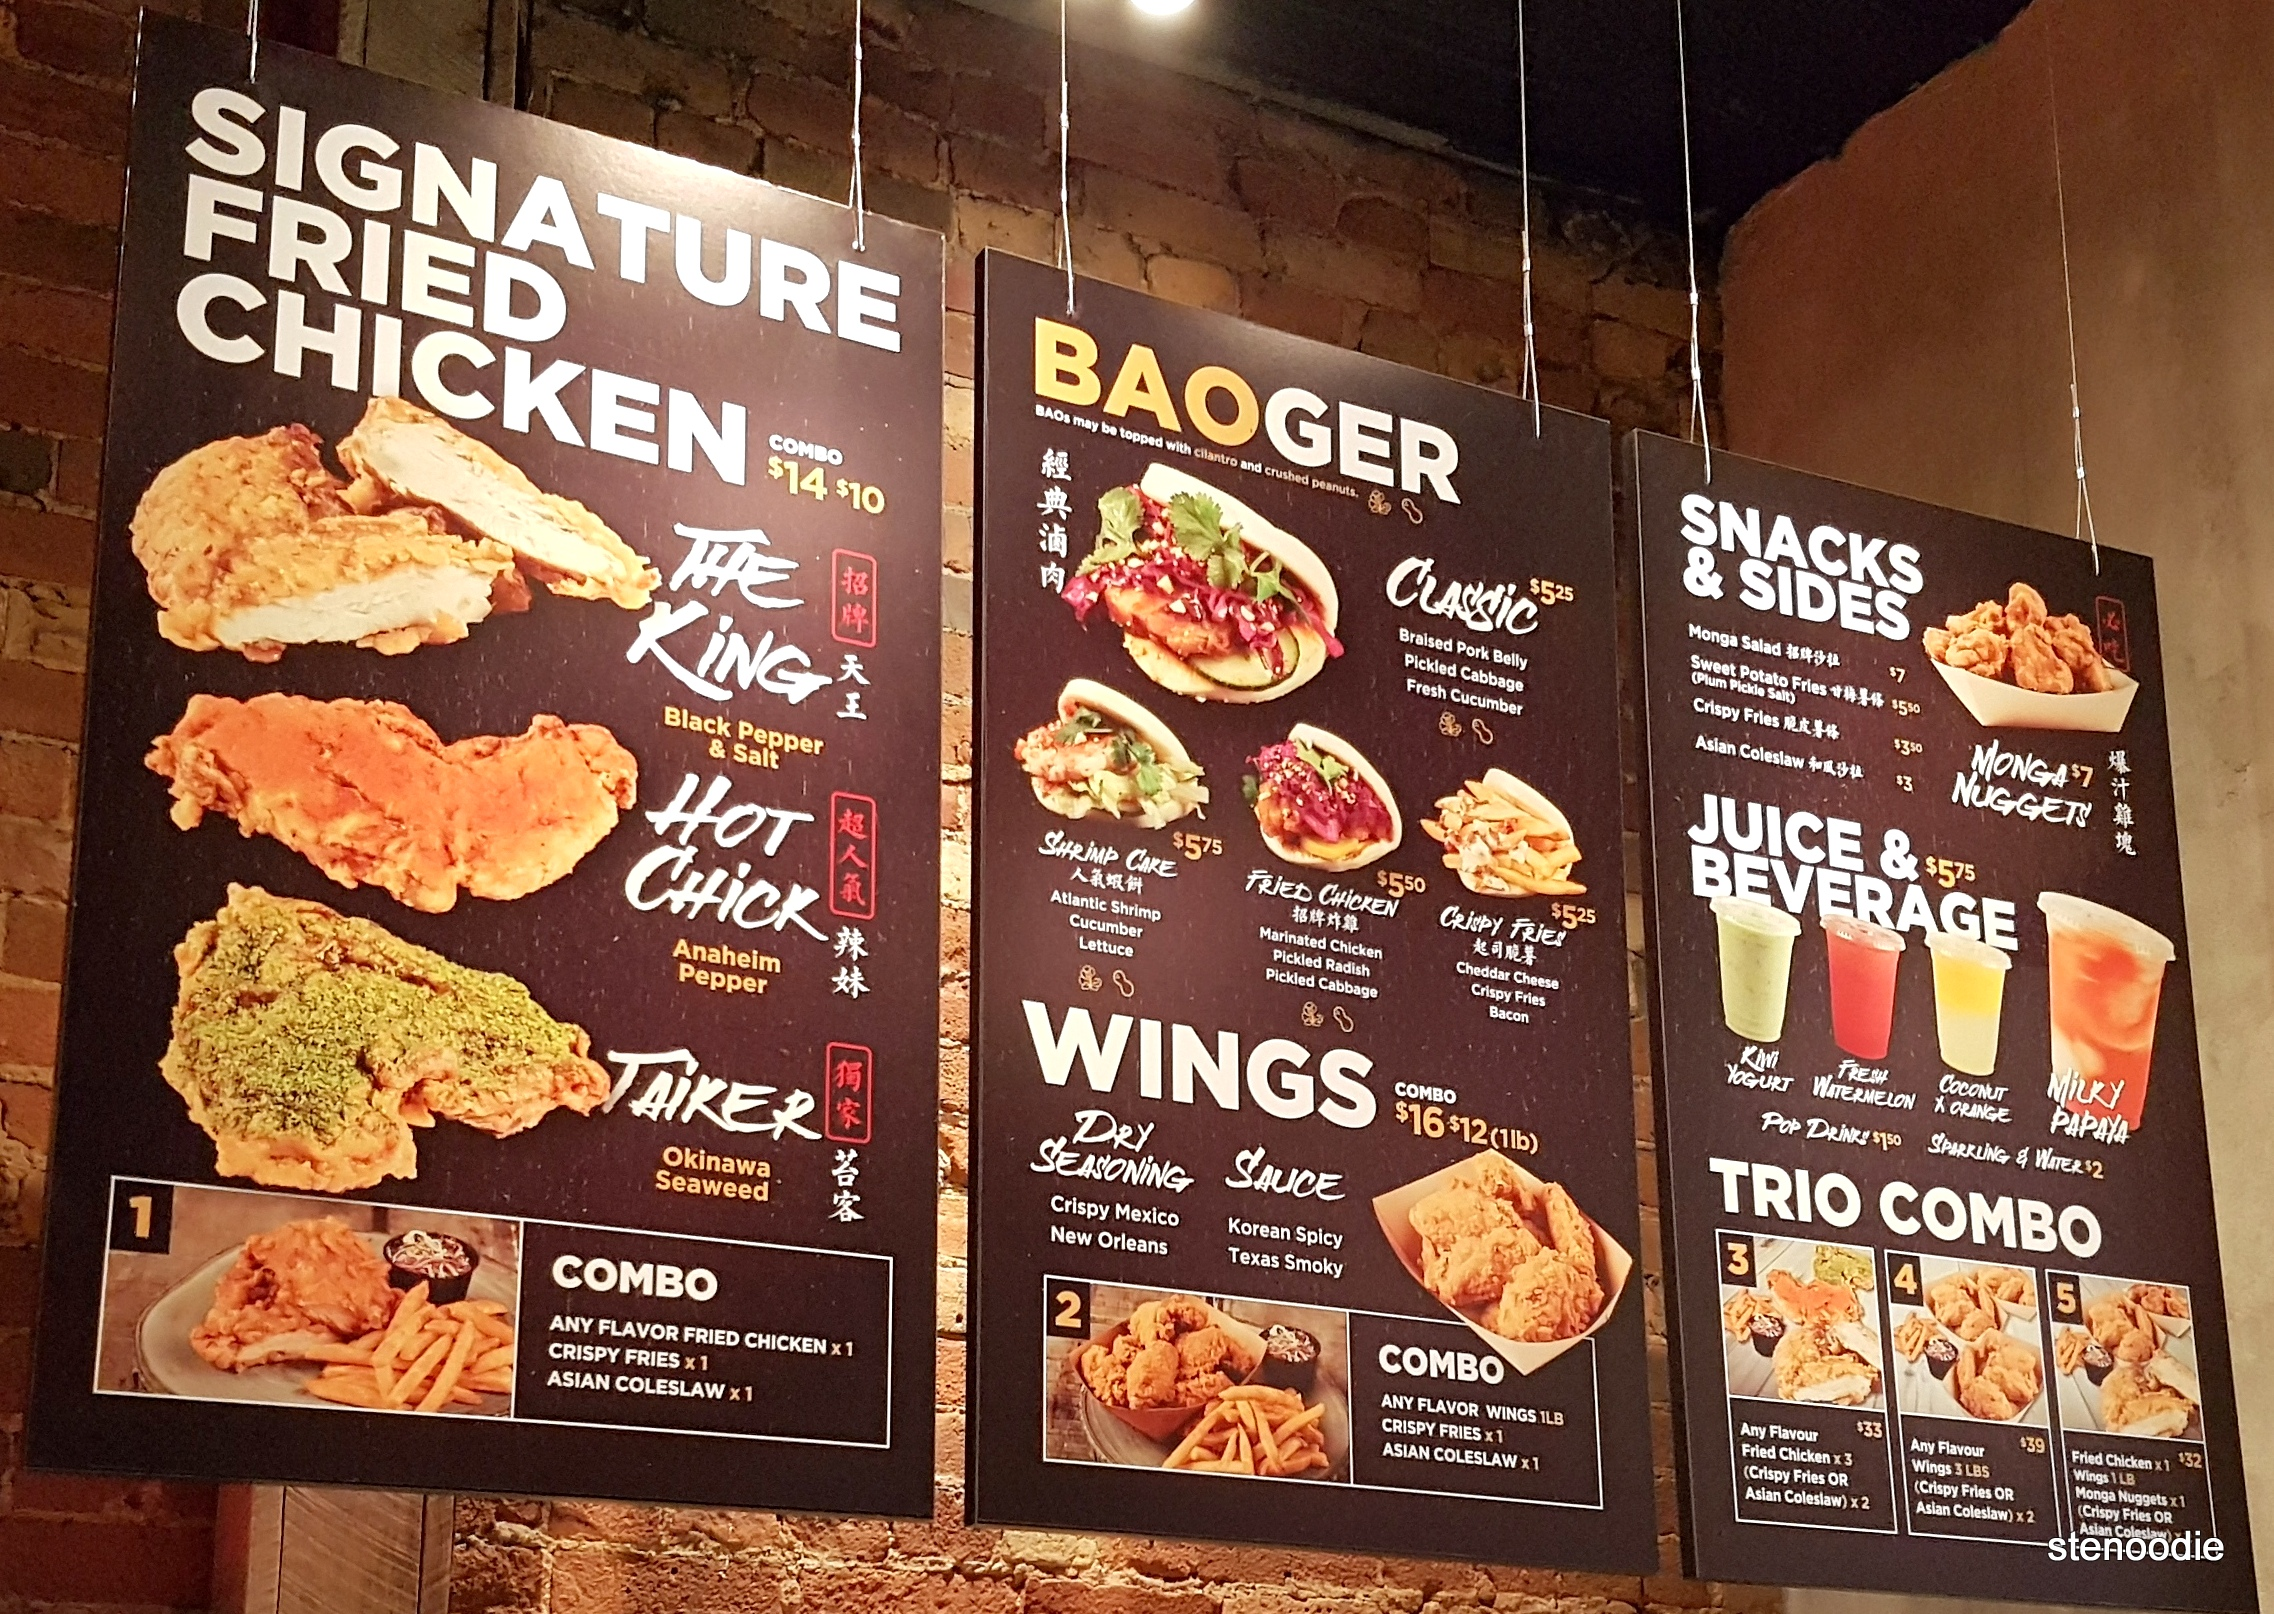 Monga Fried Chicken menu and prices